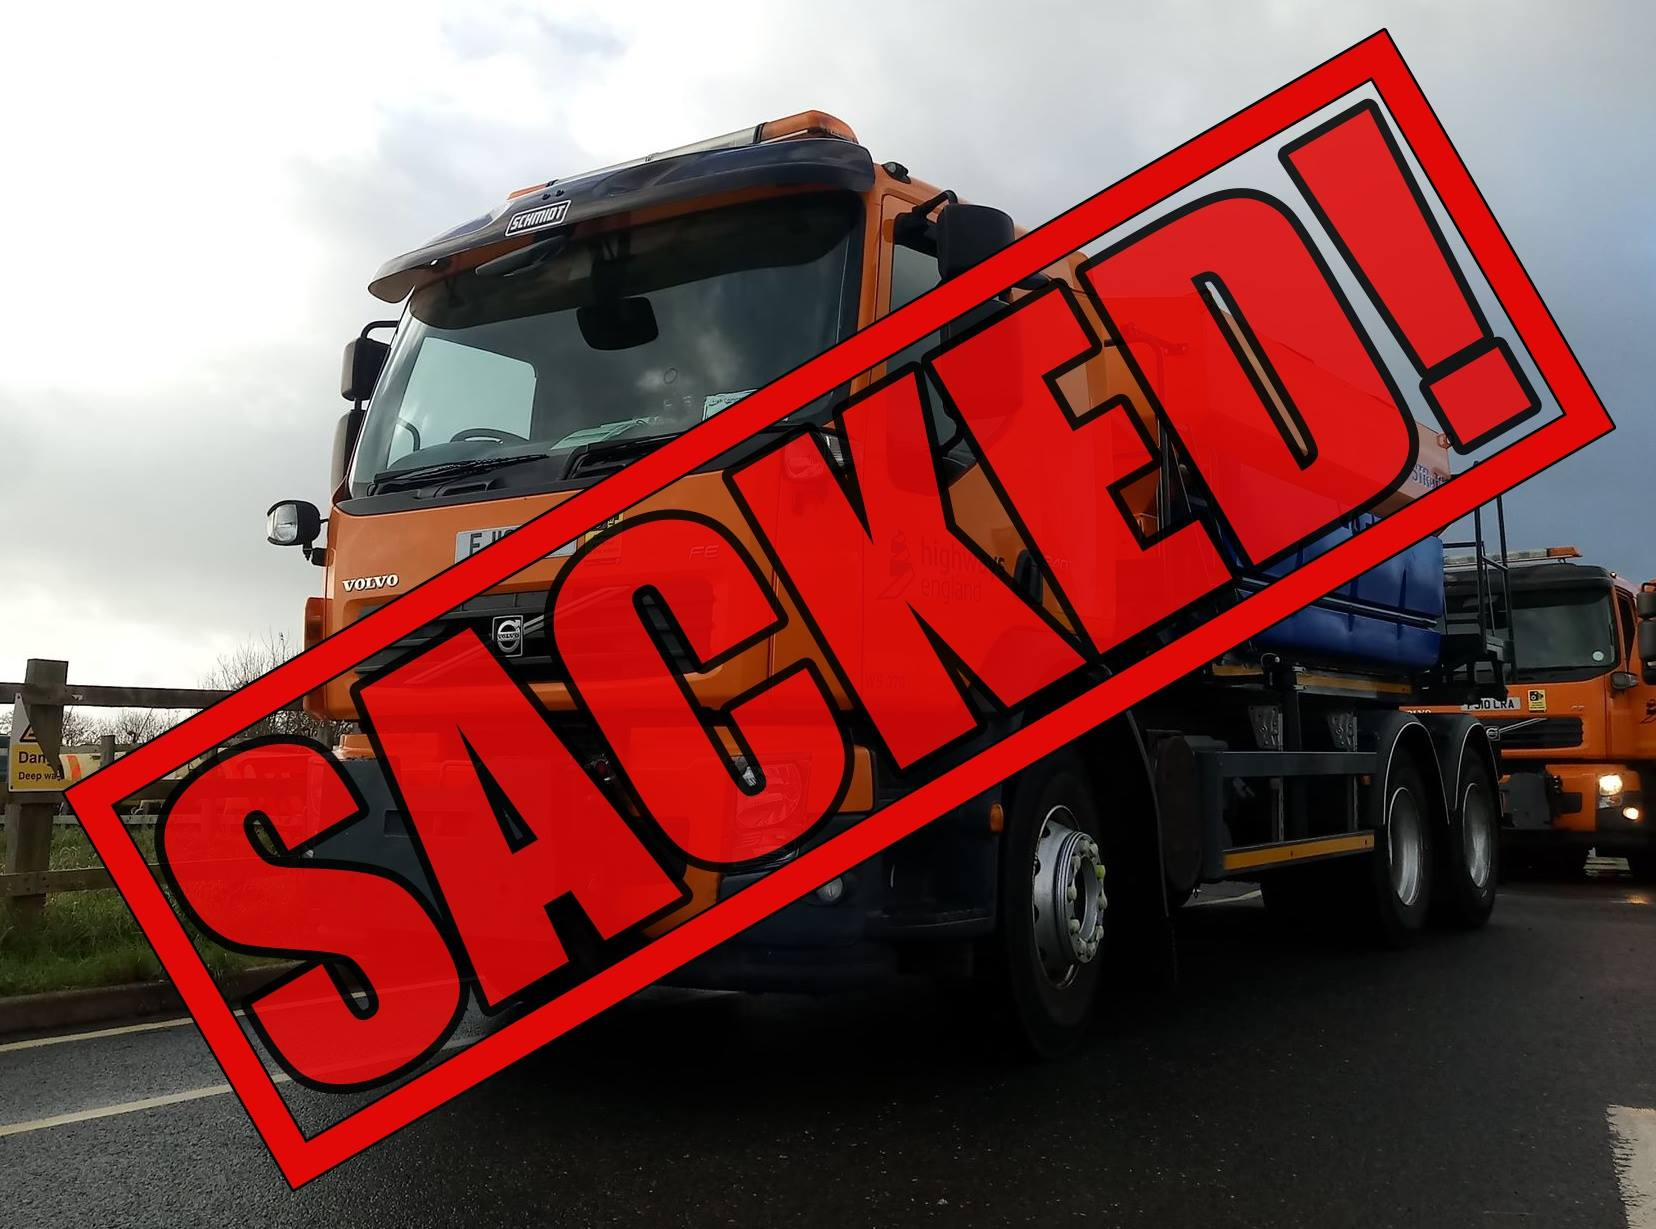 Somerset's Gritters Sold - Drivers Sacked!